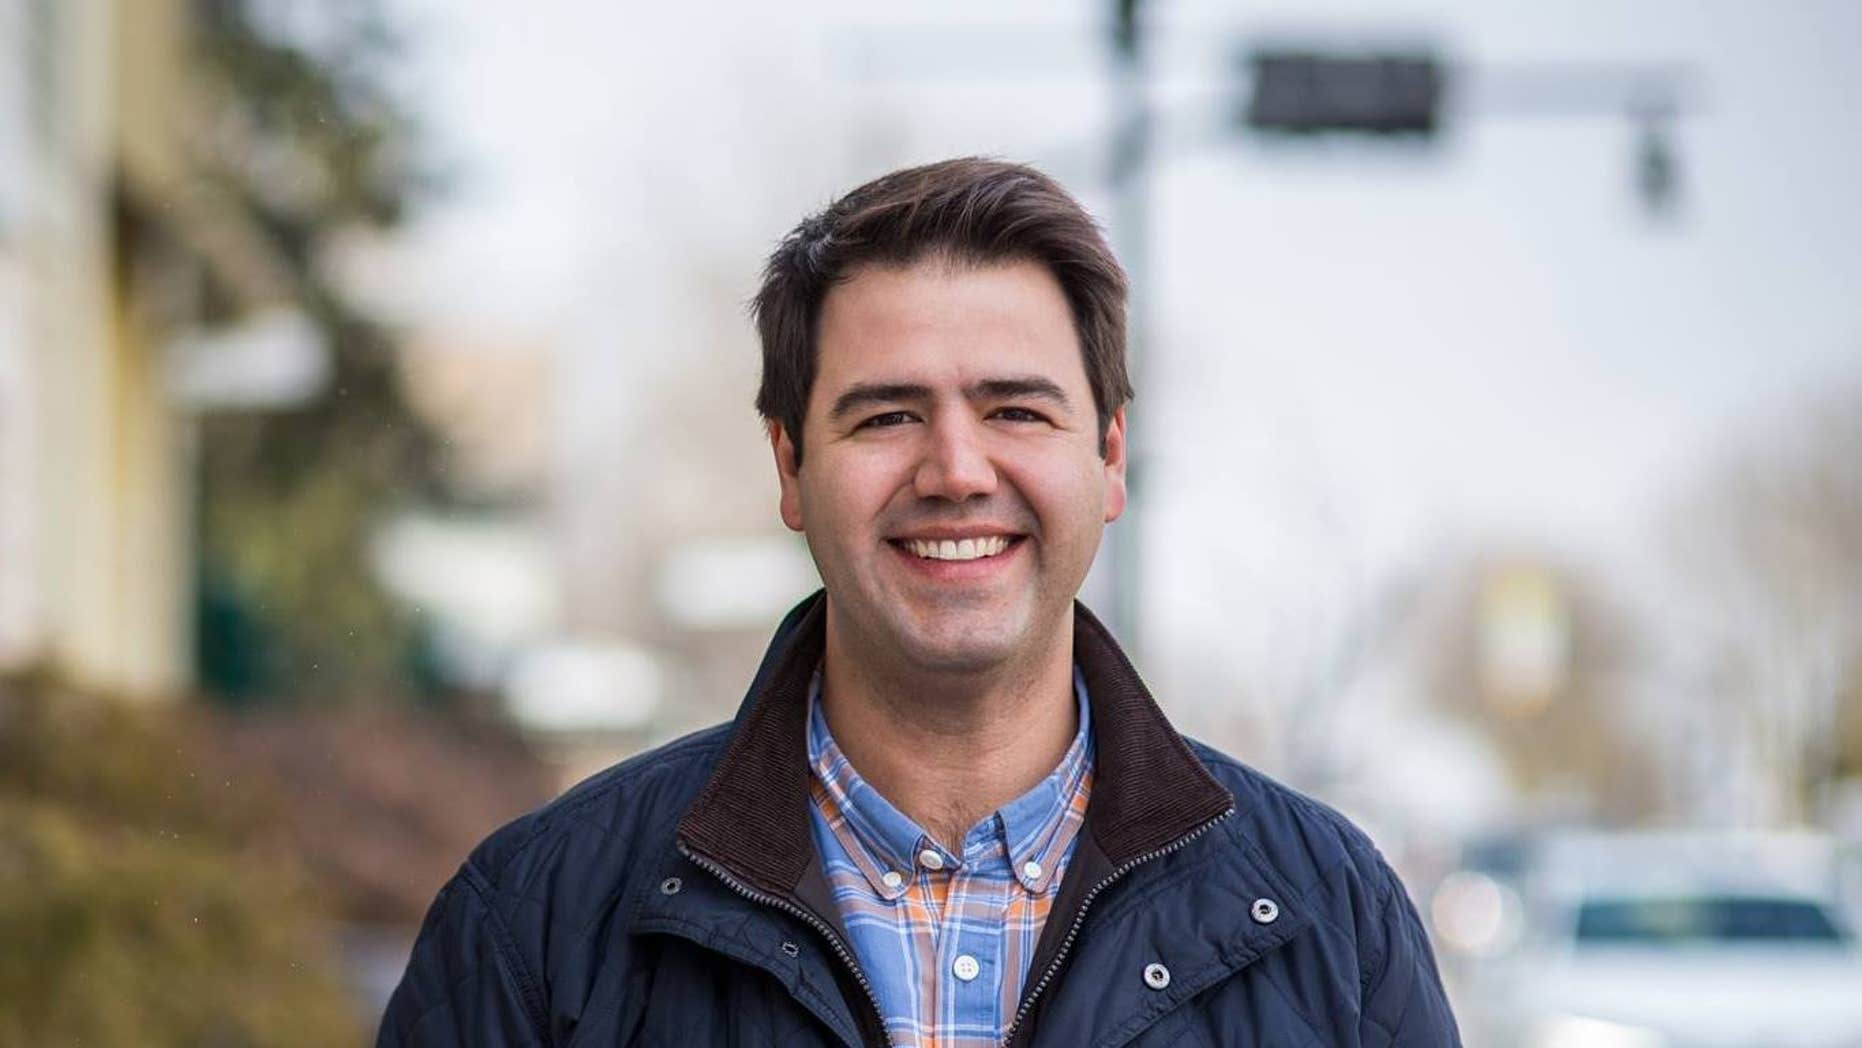 Danny O'Conner, a Democratic congressional hopeful in Ohio's special election, has vastly exaggerated his experience working in a county prosecutor's office, with public records revealing he was mostly a seasonal intern supervisor and certified legal intern.